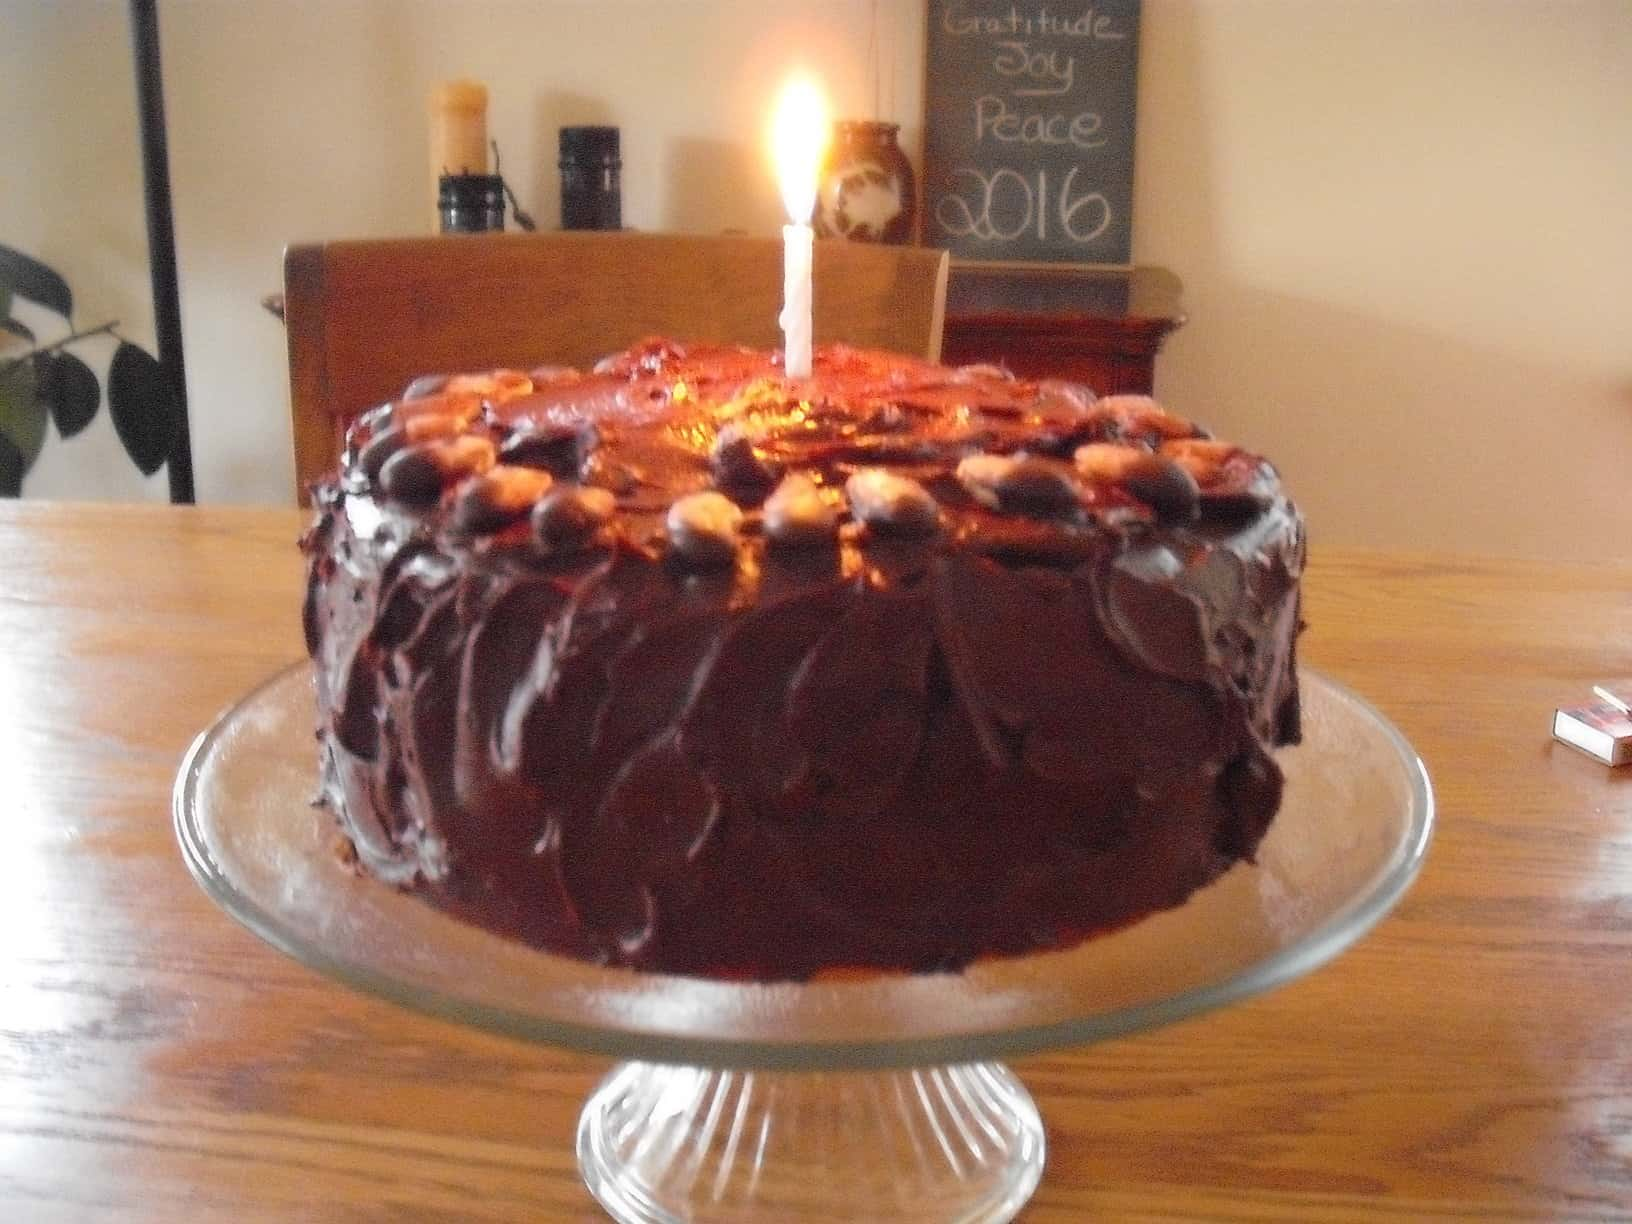 Orange cake with chocolate icing